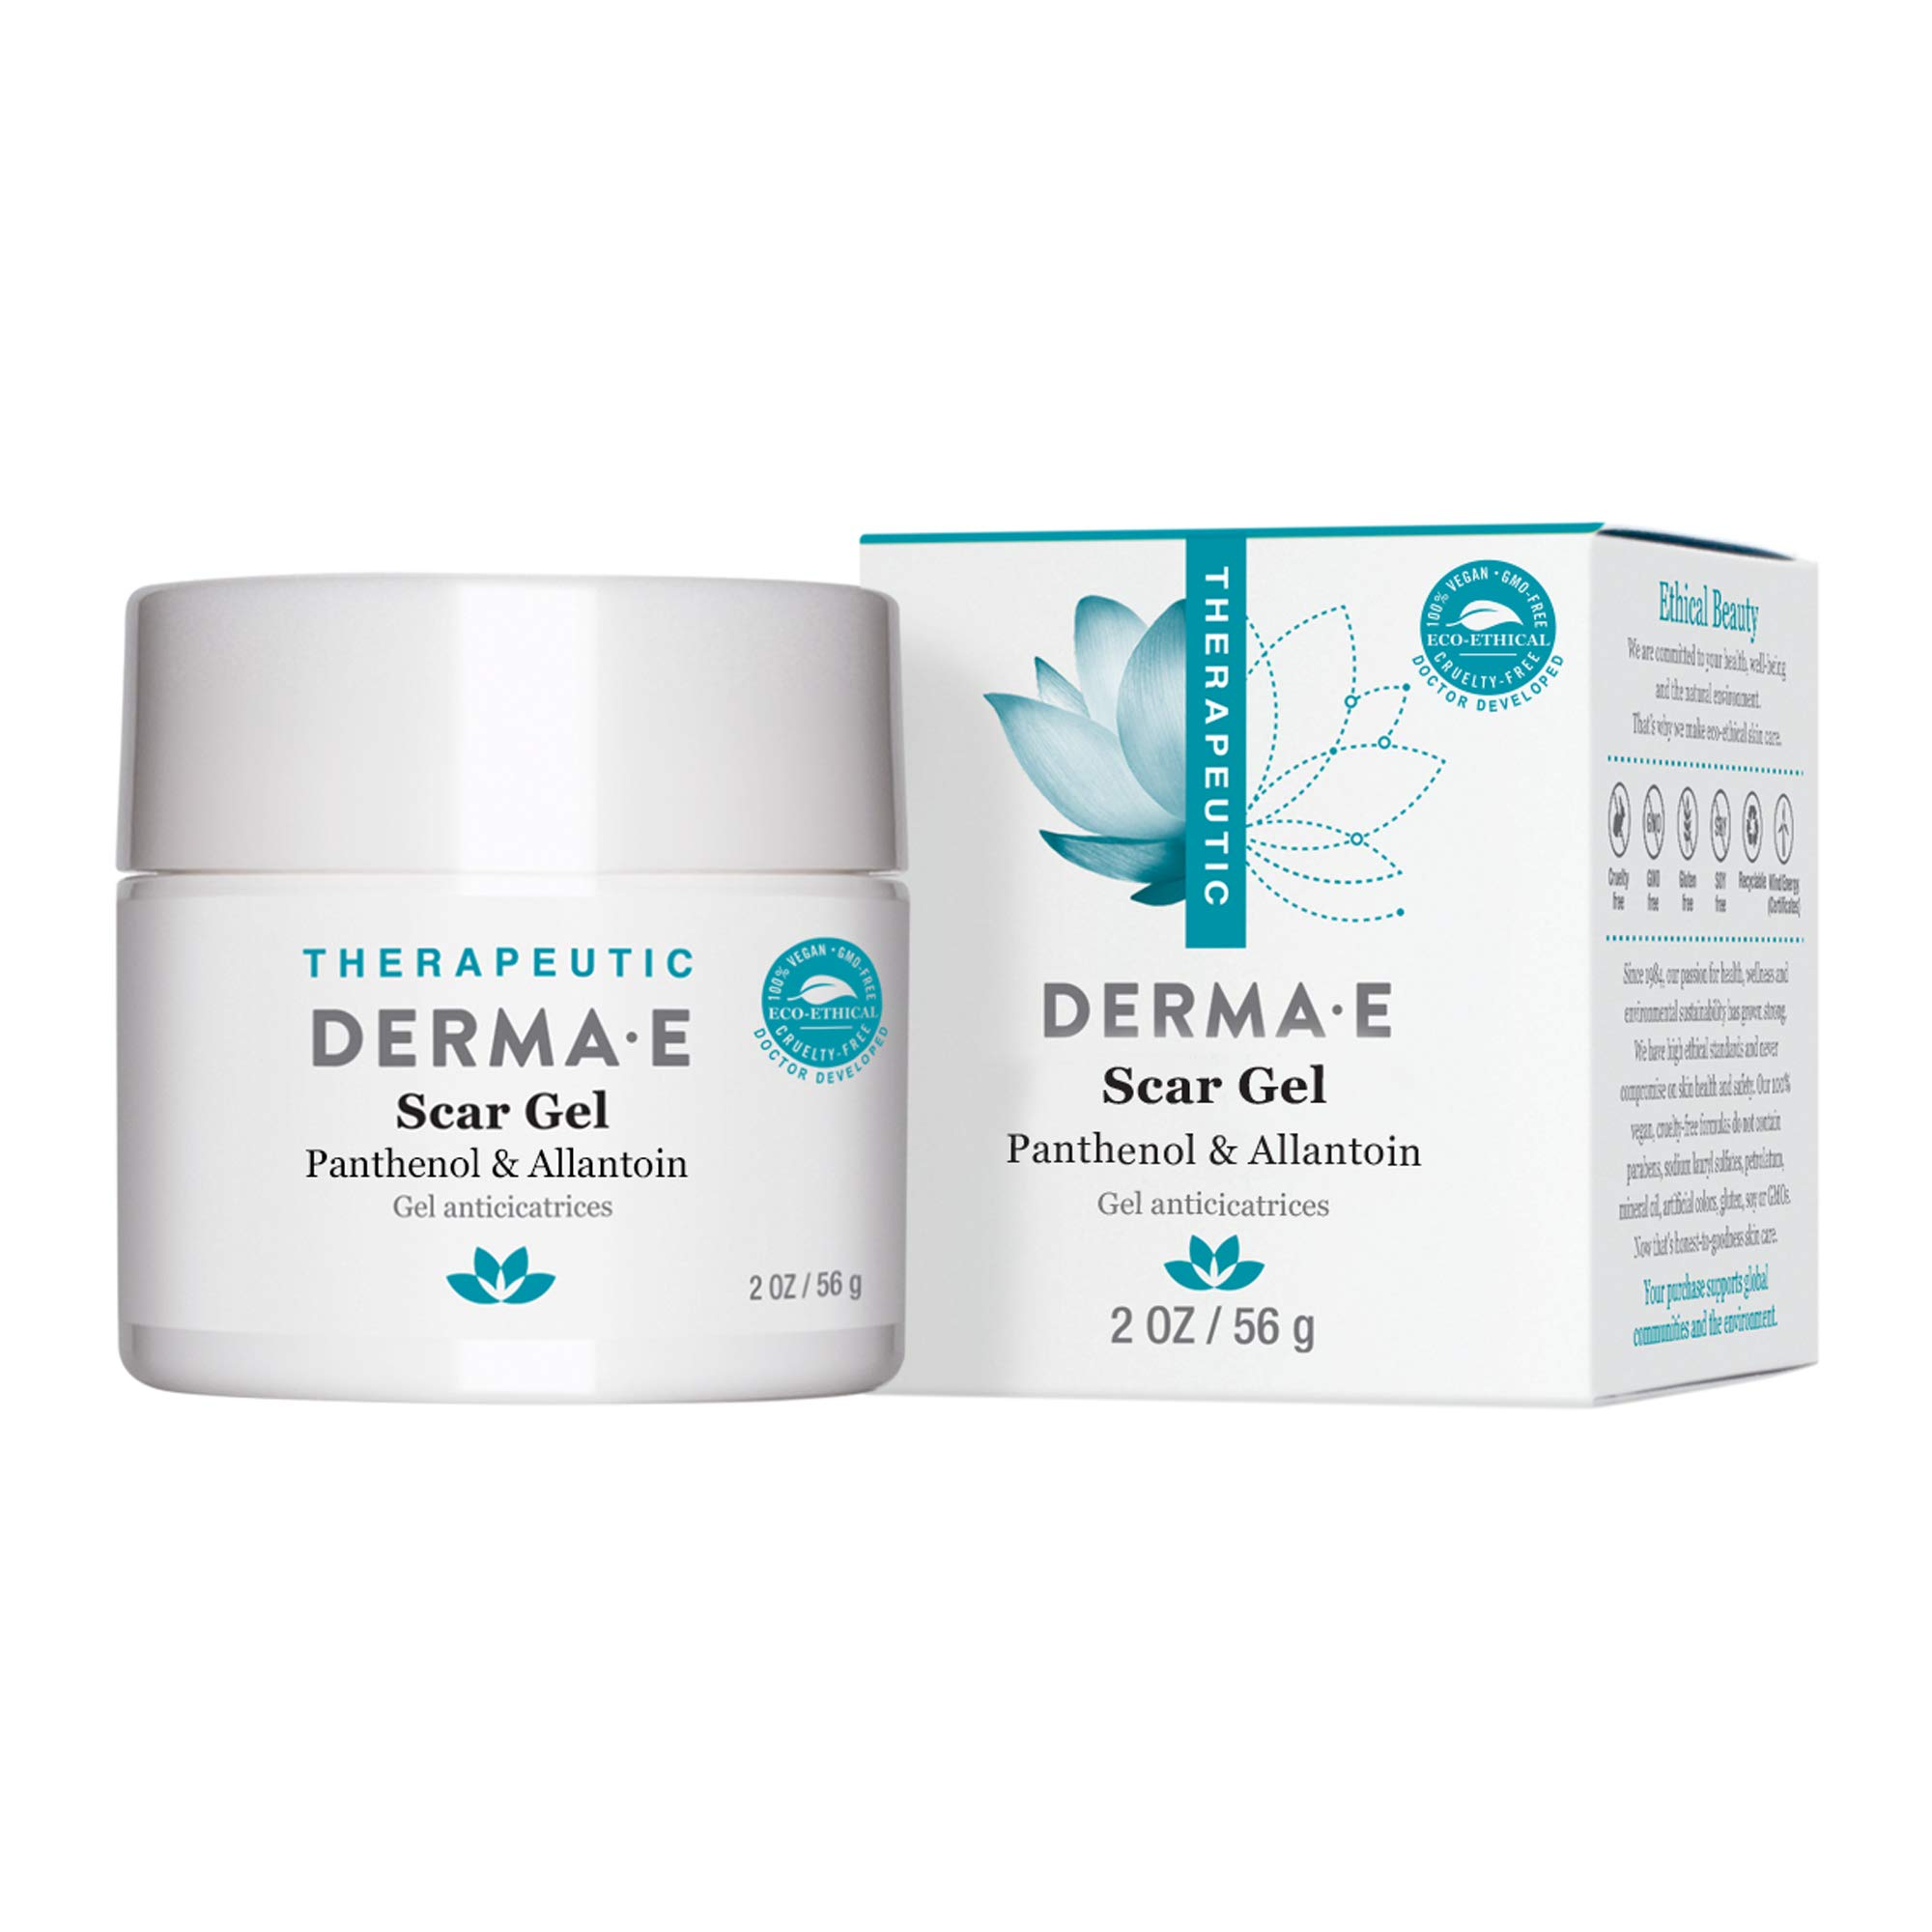 DERMA E Scar Gel - Therapeutic gel with Panthenol & Allantoin - Effective treatment & natural scar removal. Treats acne scars, burns, tattoos, callouses, & stretchmarks